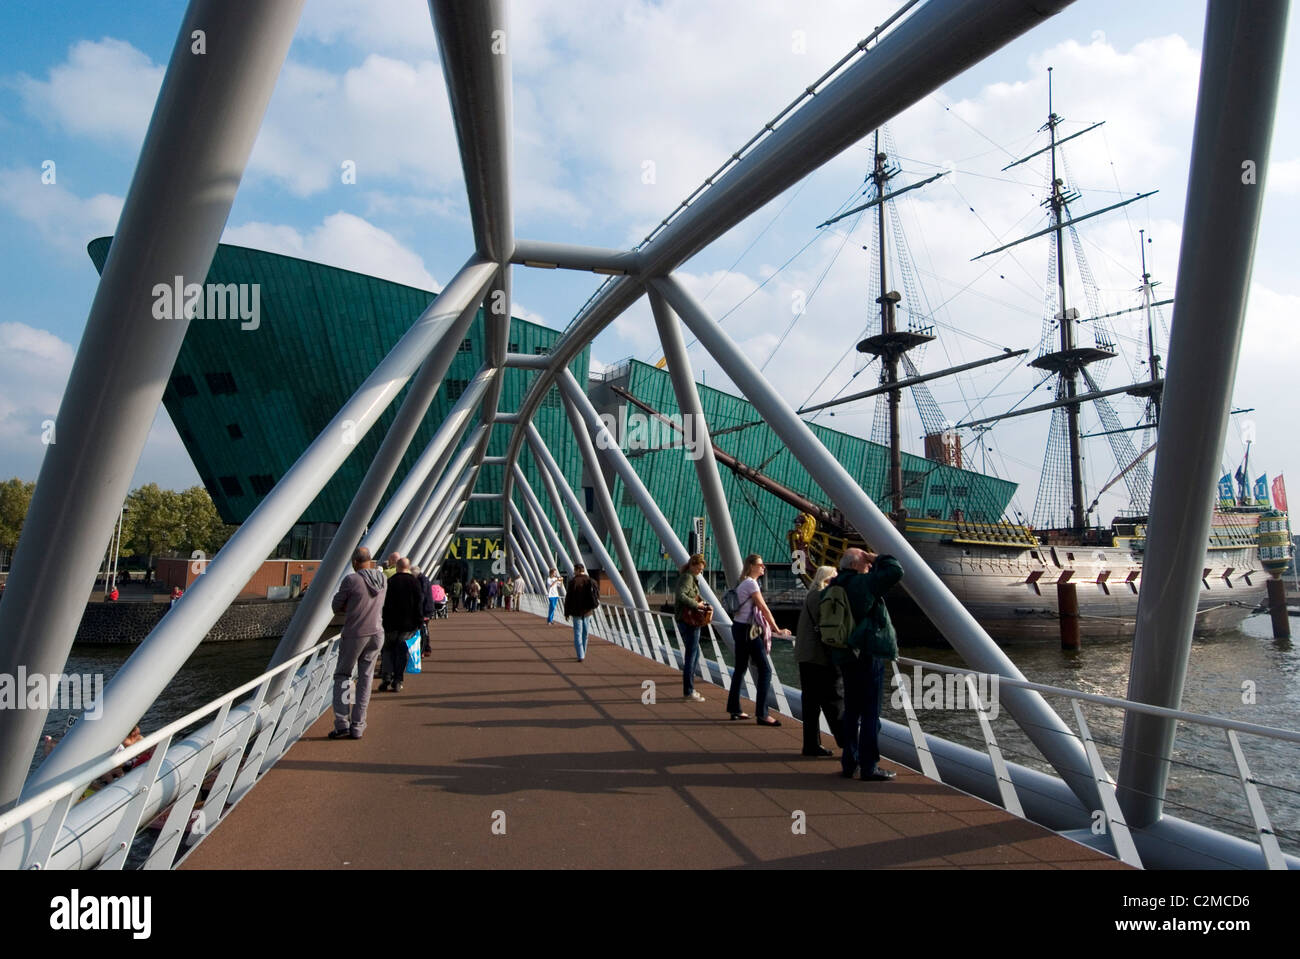 Bridge over the eastern dock to NEMO, the Netherland's largest science museum, Amsterda - Stock Image